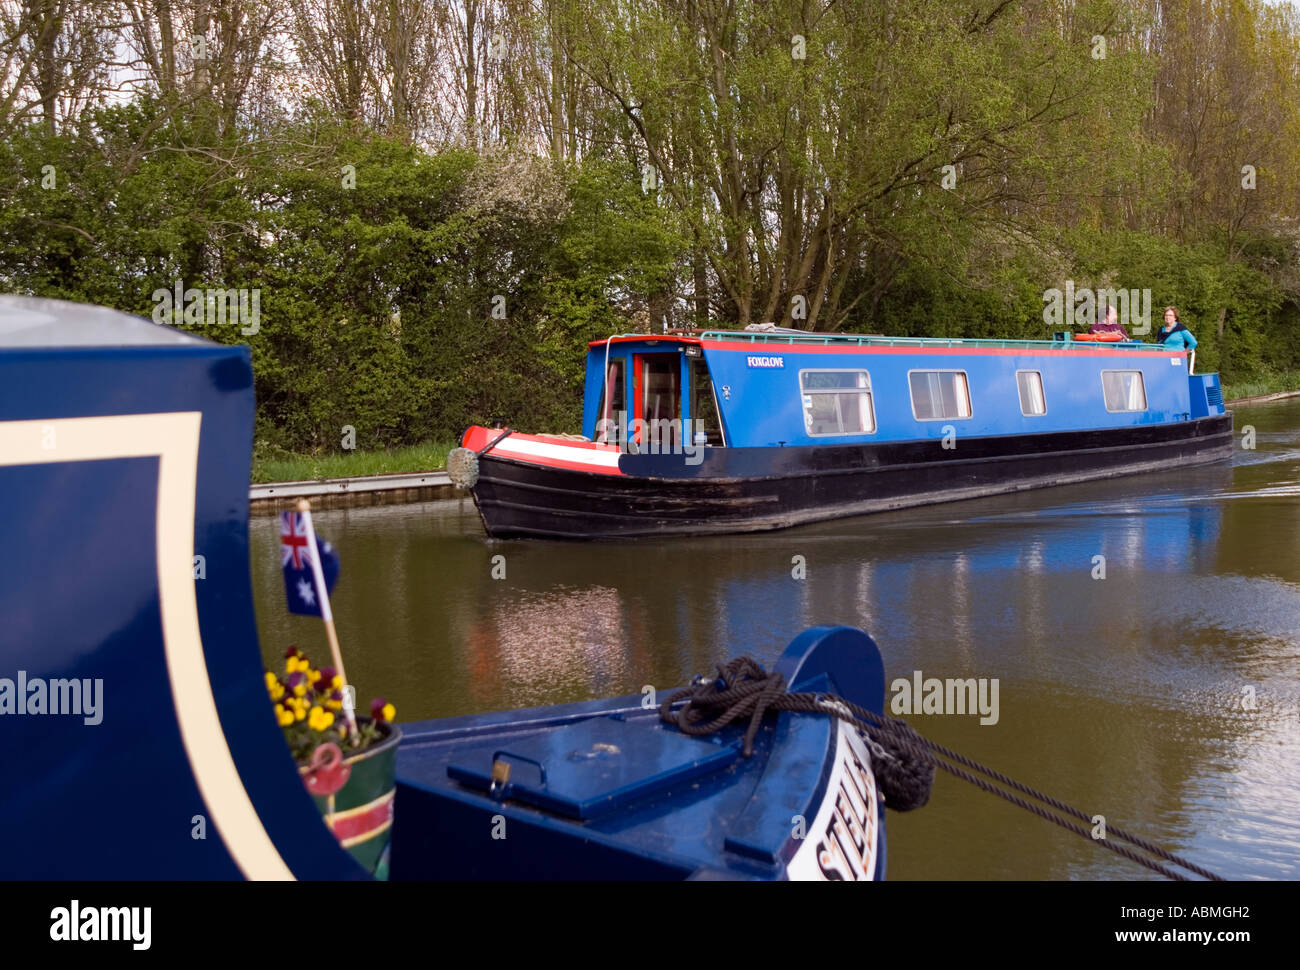 Wyvern Shipping Company narrowboat navigating central Milton Keynes on the Grand Union Canal Nikon D200 - Stock Image